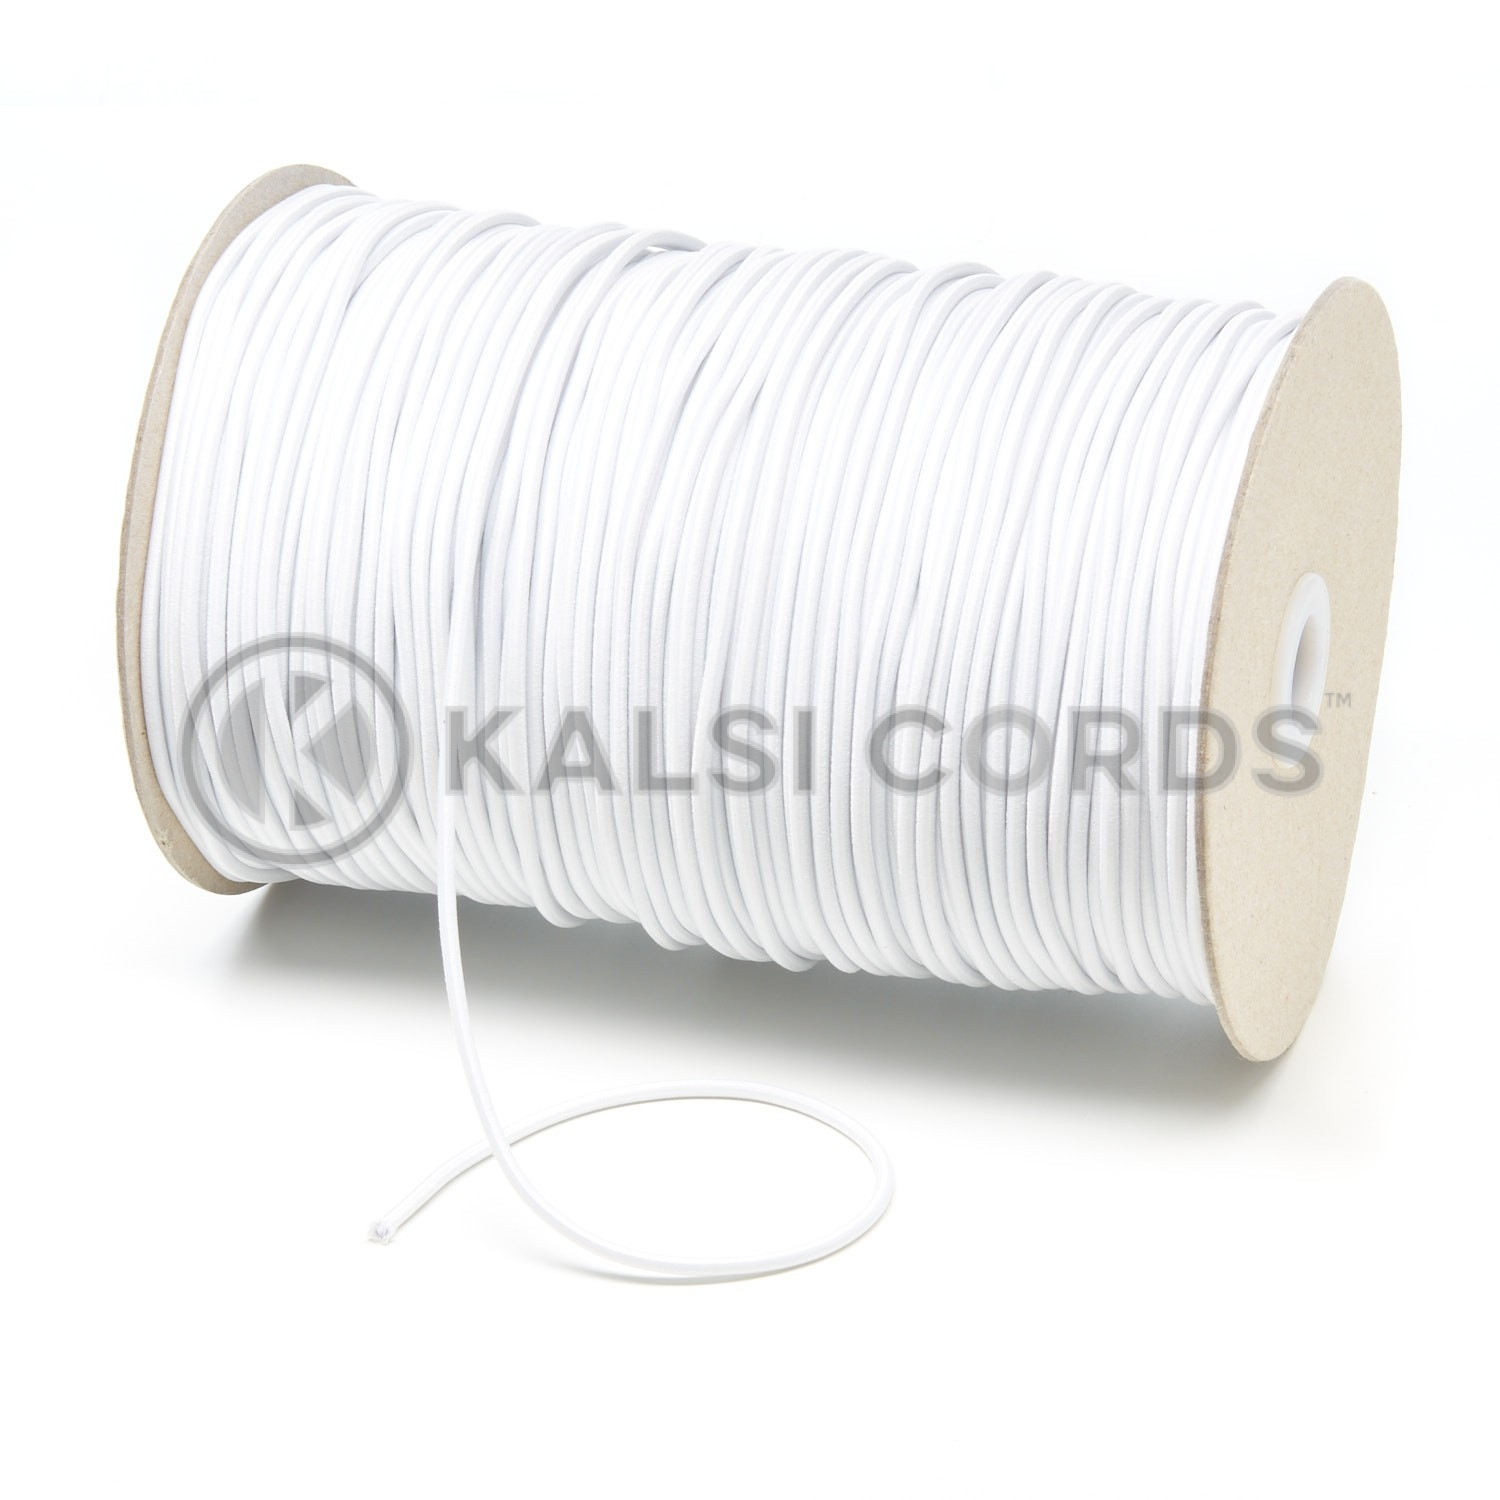 2mm White Thin Fine Round Elastic Cord Kalsi Cords